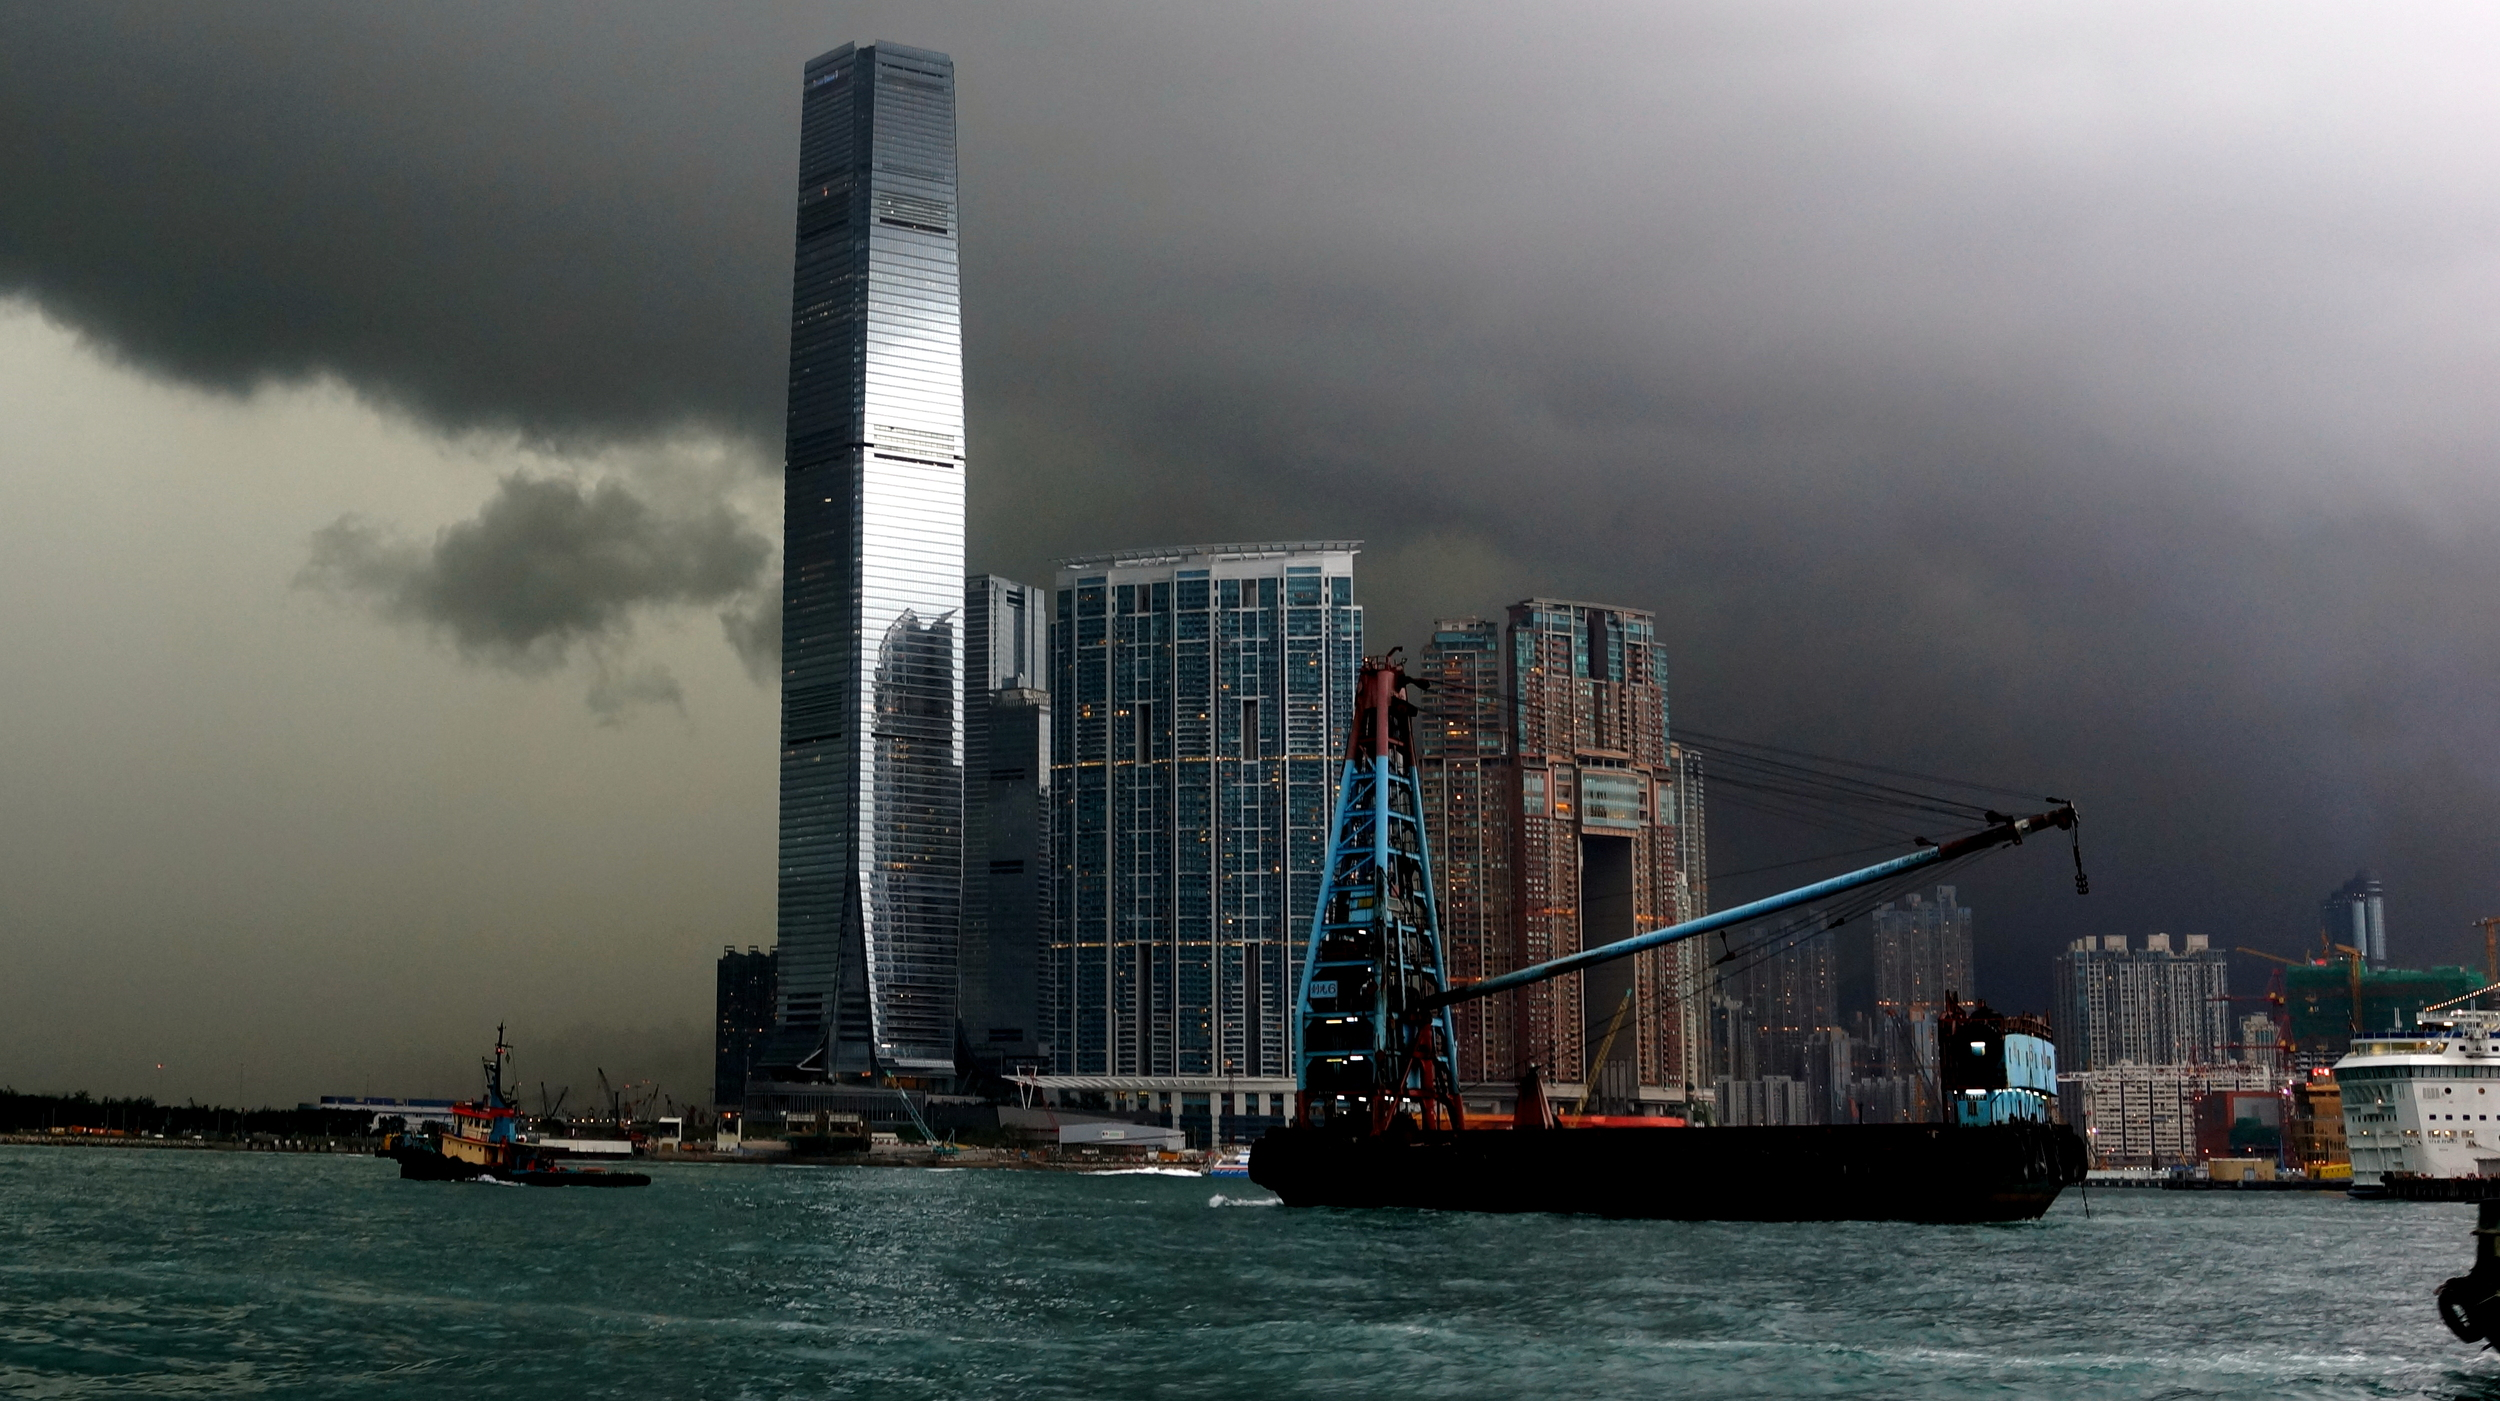 Yesterday was a typical wet day in Hong Kong - we had 7 inches of rain... this is the major thunderstorm that hit Hong Kong at 5.15pm yesterday.